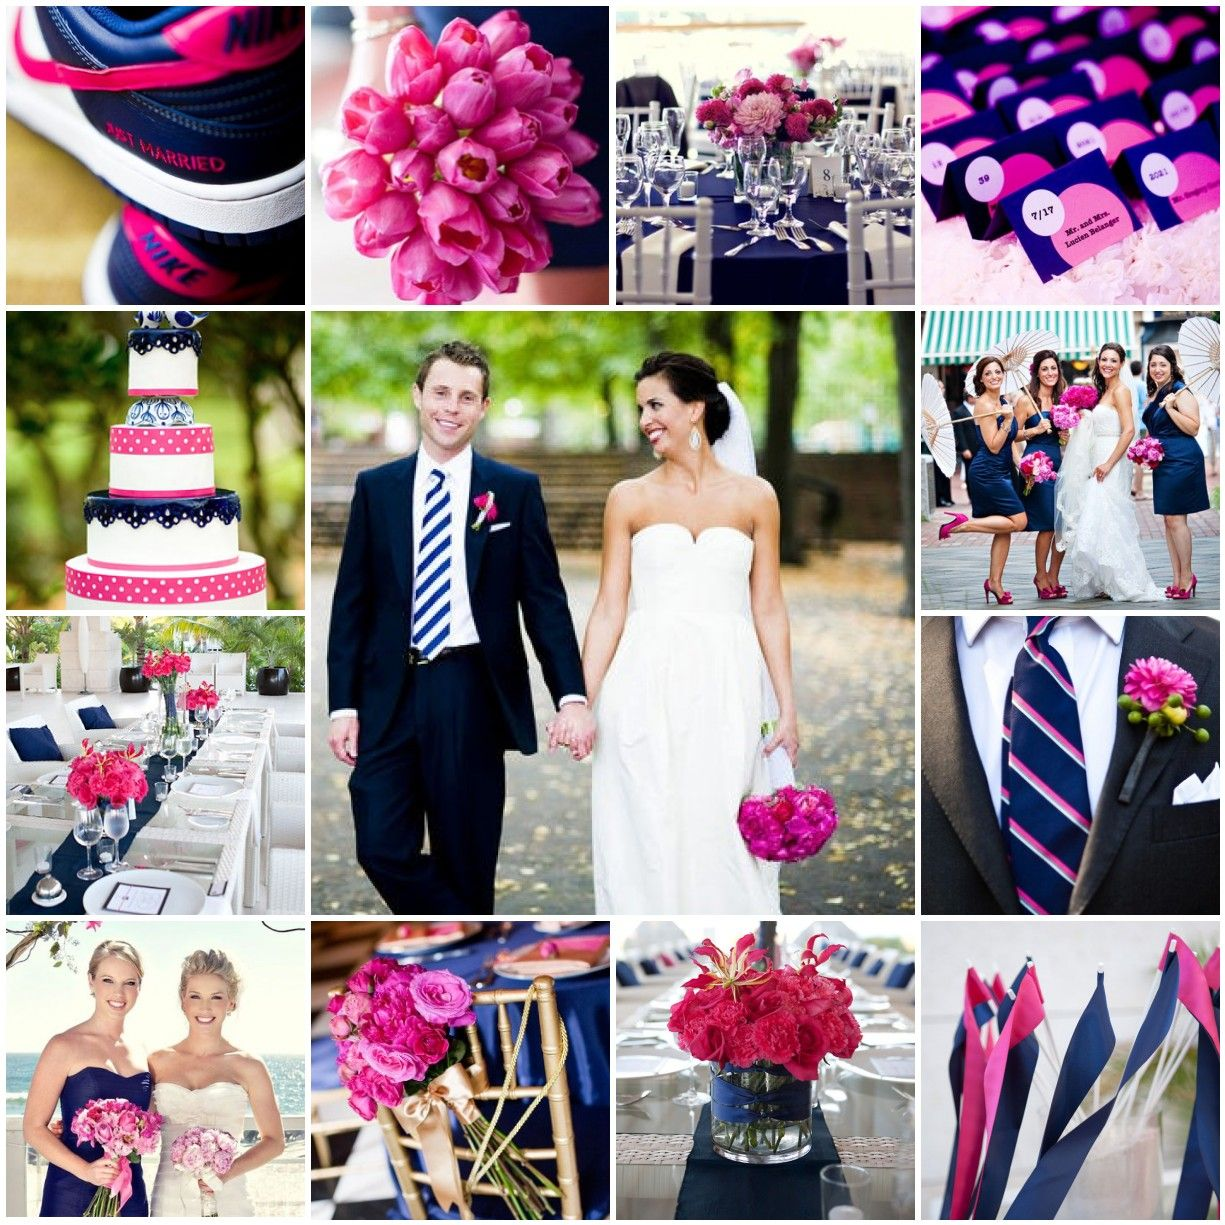 Pink and navy blue wedding tricia wedding pinterest for Wedding pink and blue